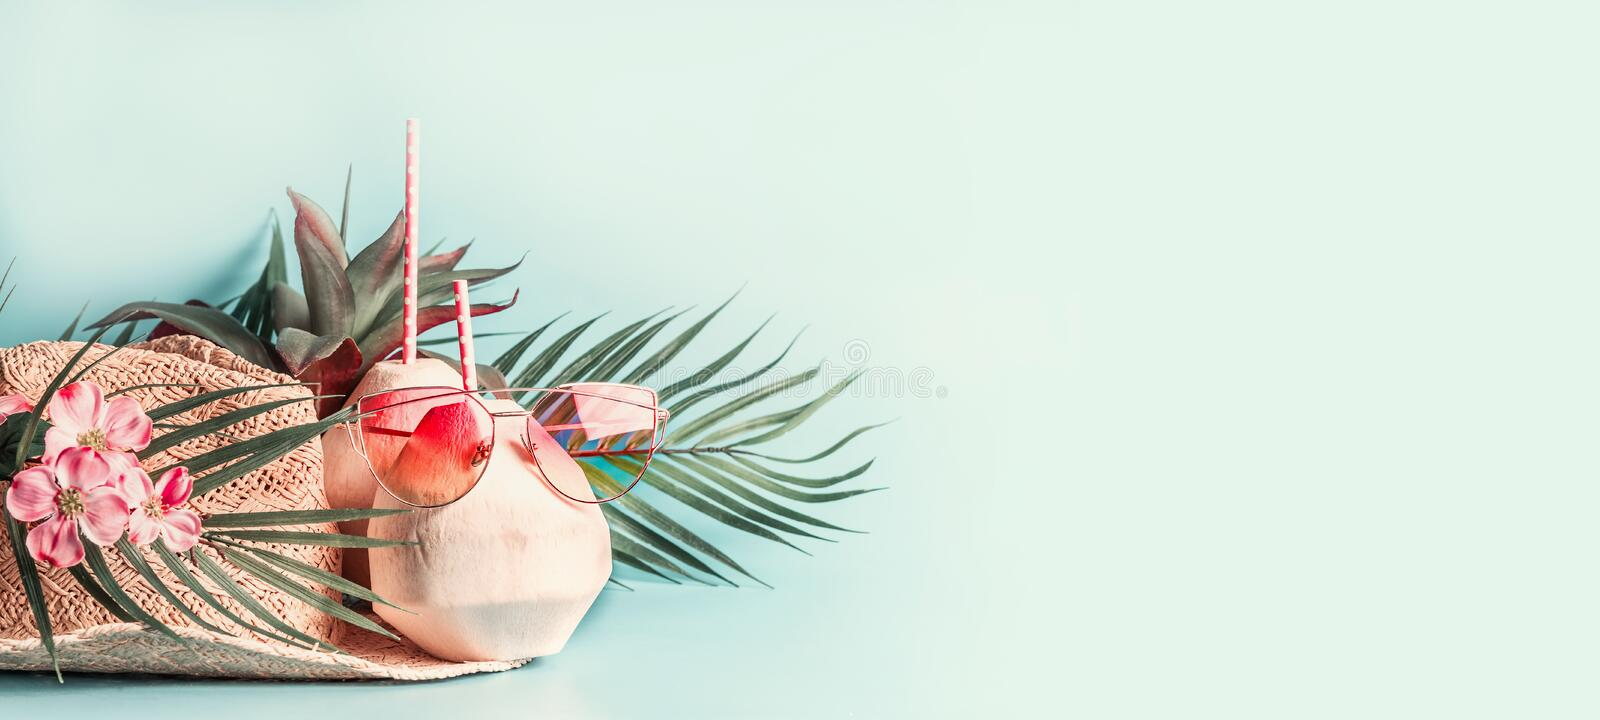 Summer holiday . Beach accessories : straw hat with palm leaves and flowers, pink sun glasses and coconut cocktail on blue turquo royalty free stock photography